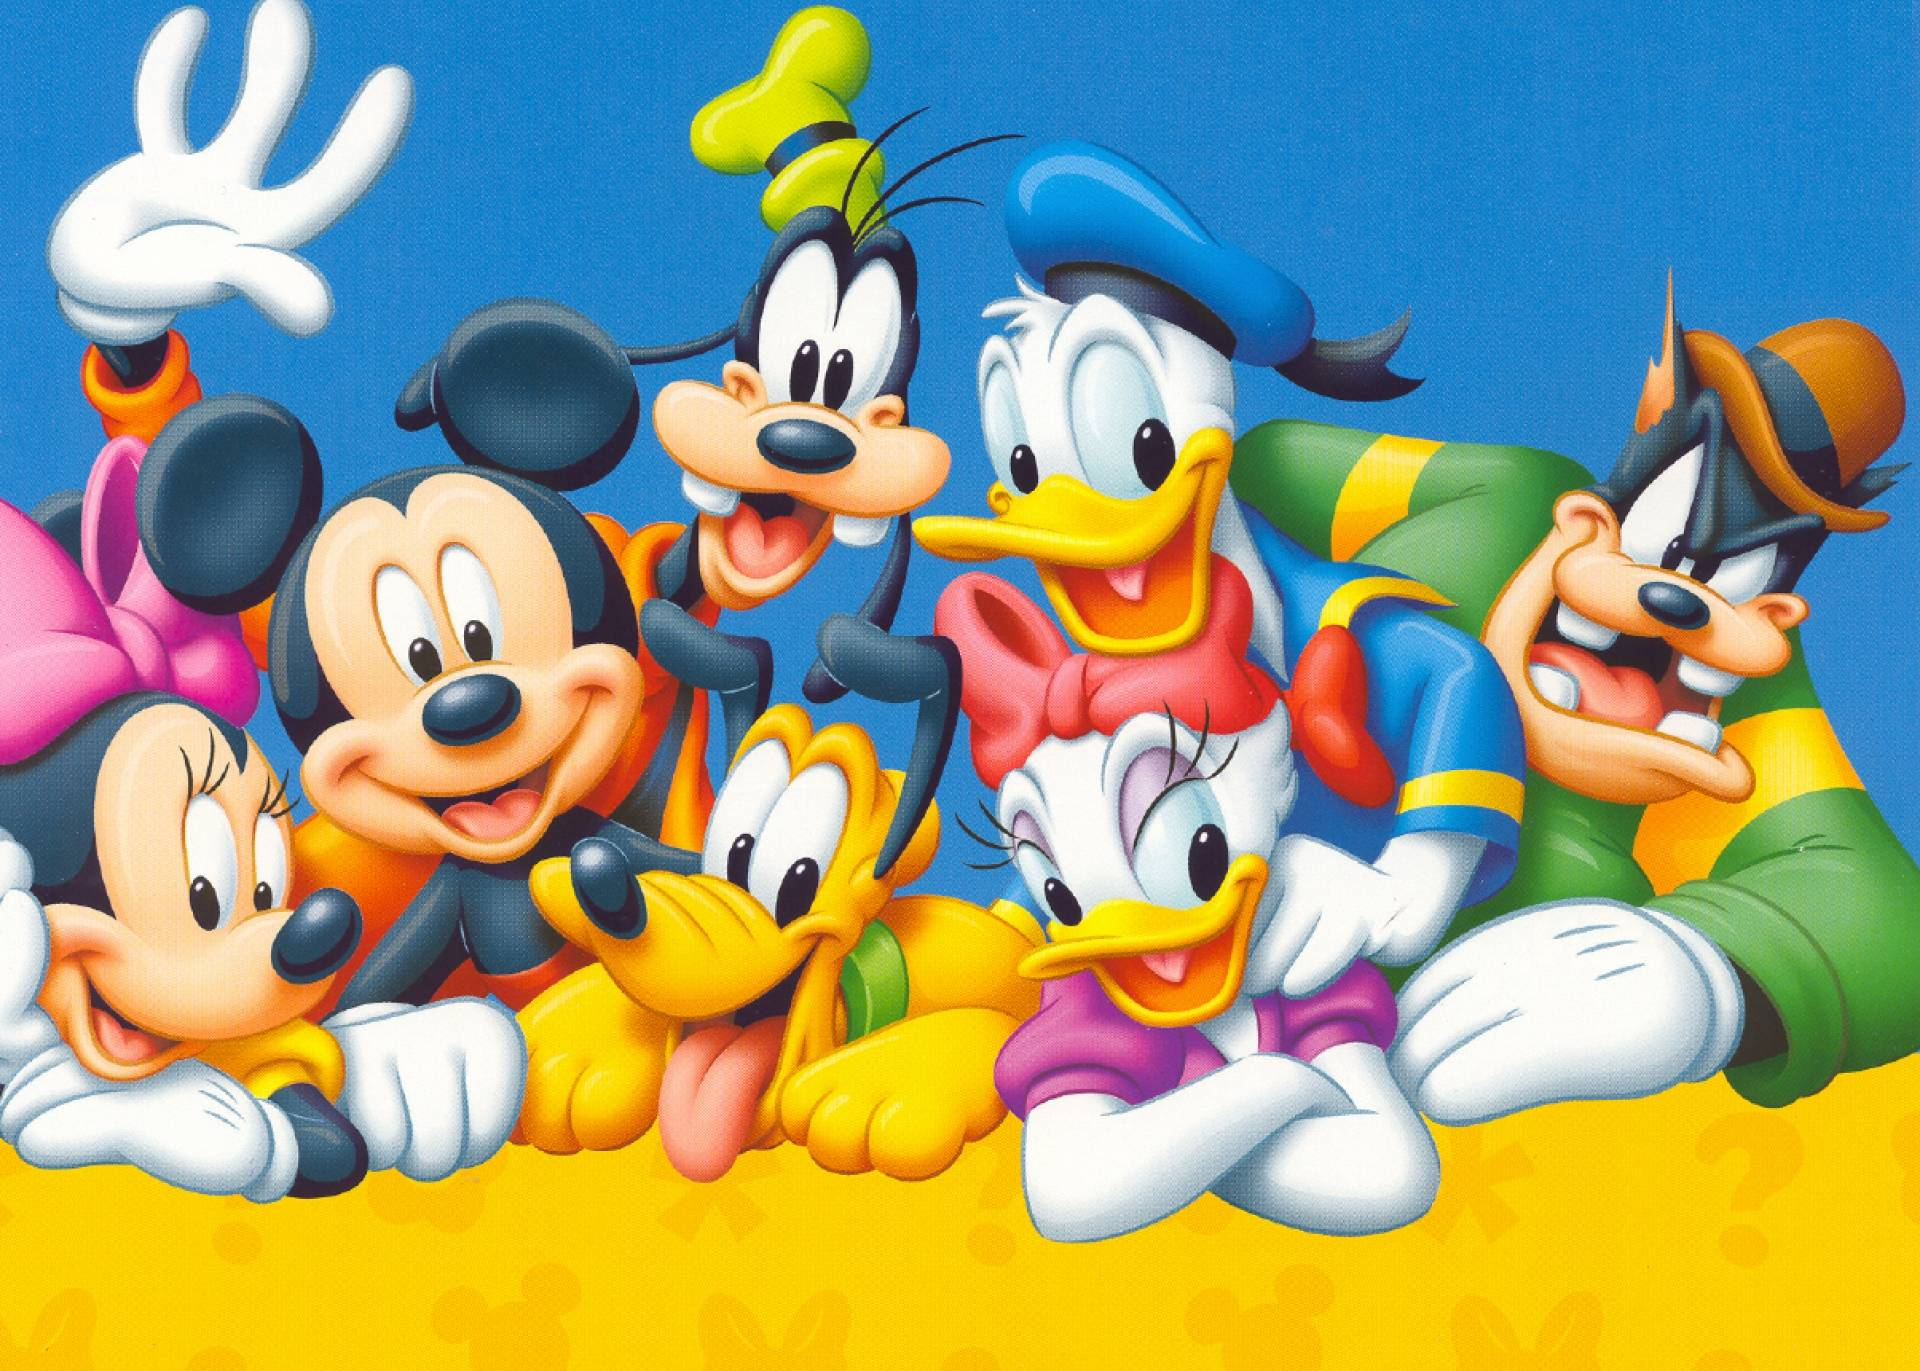 Image For > Disney Wallpapers Hd